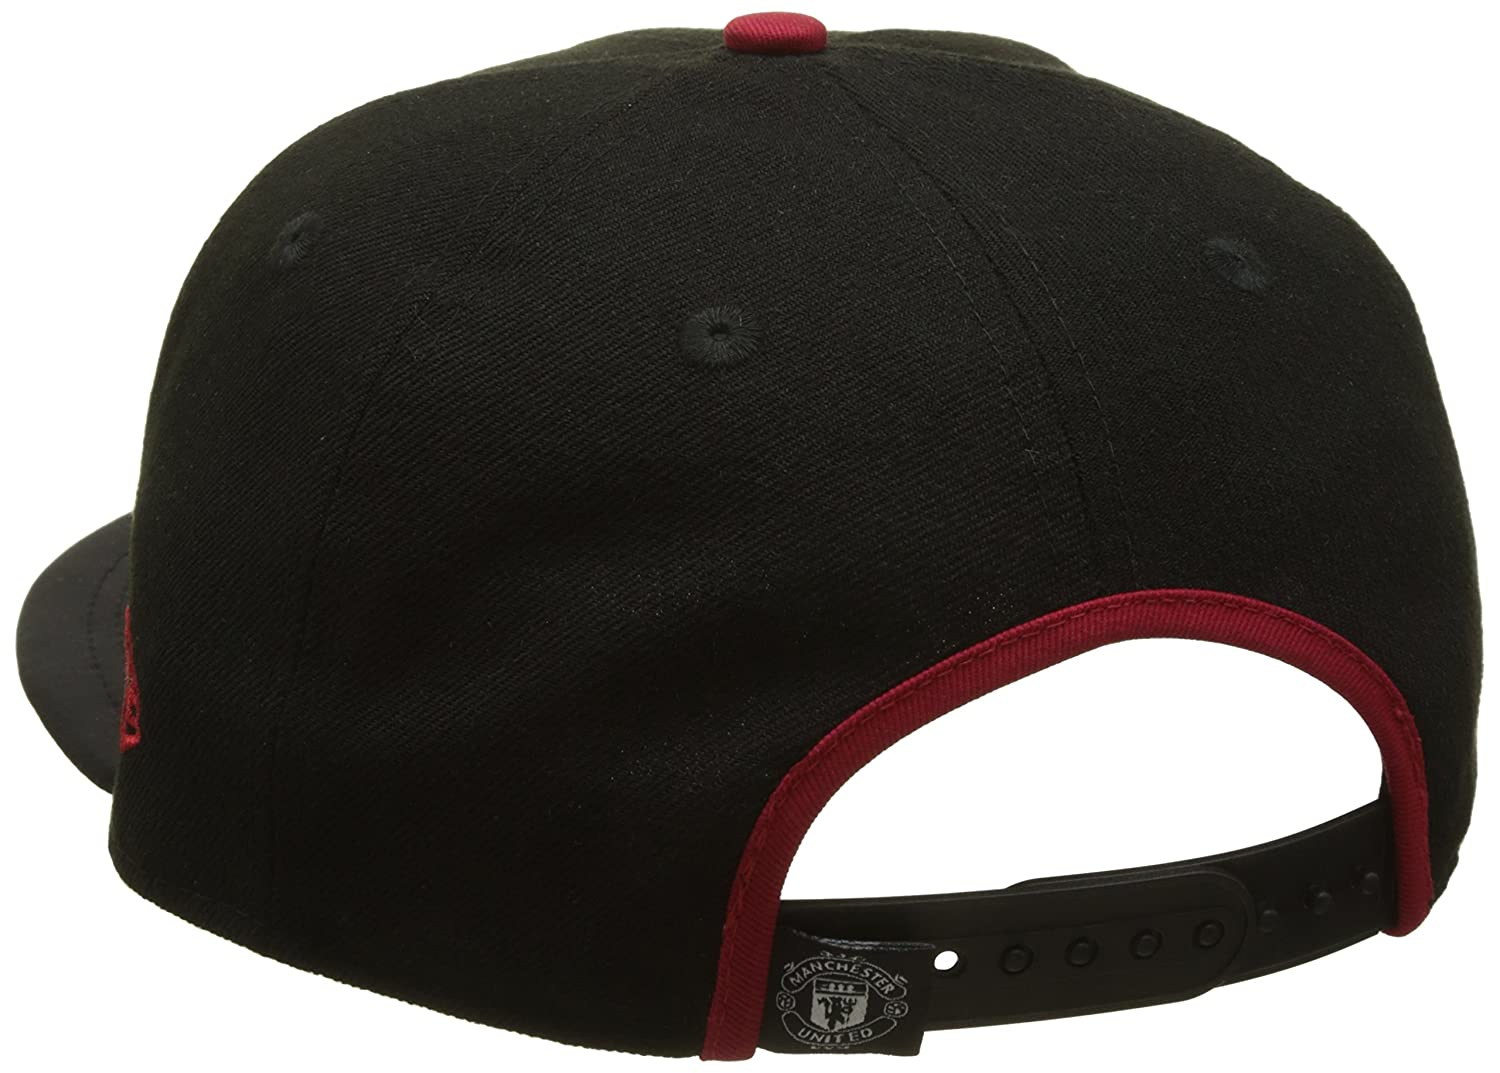 9c577f4e76c62 New Era Men s Pop Arch 950 Manchester United Fc Cap